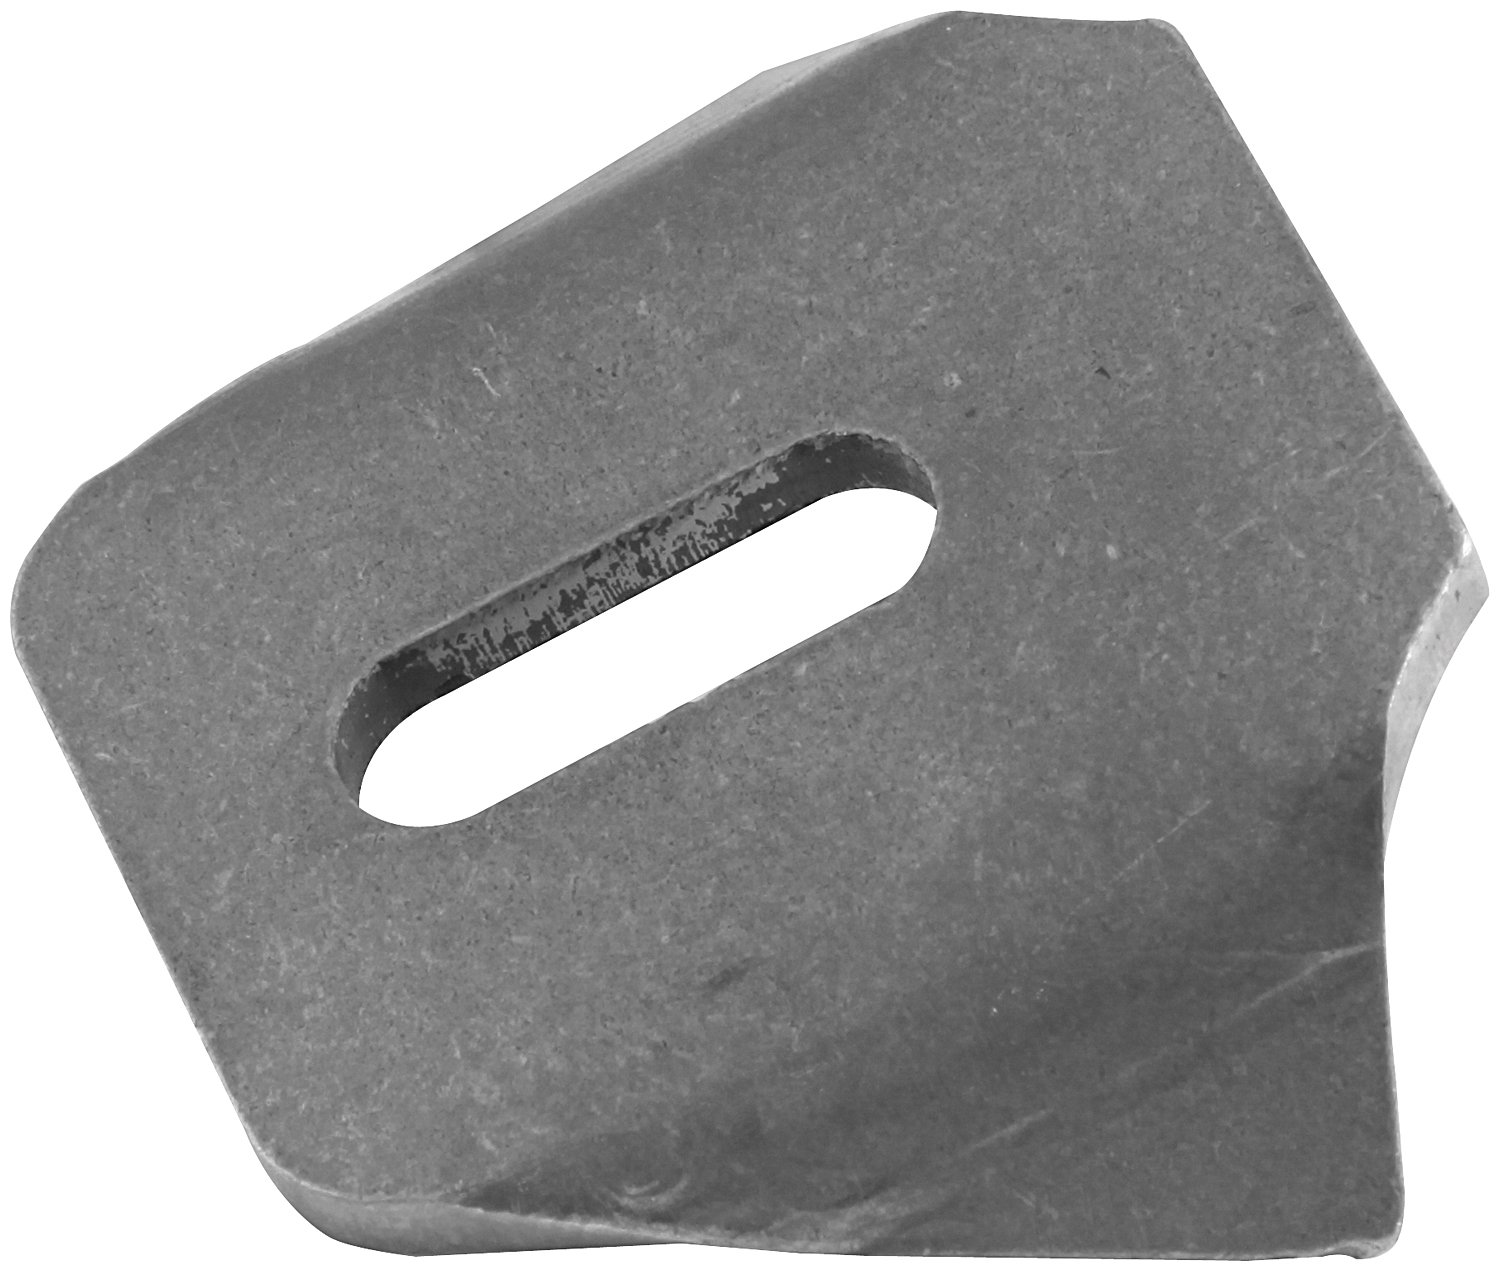 Allstar ALL60015 1-1/2'' Tall 1/8'' Thick 1/4'' x 3/4'' Hole 7/8'' Mild Steel Center Hole Height Body Brace Chassis Tab, (Pack of 4)